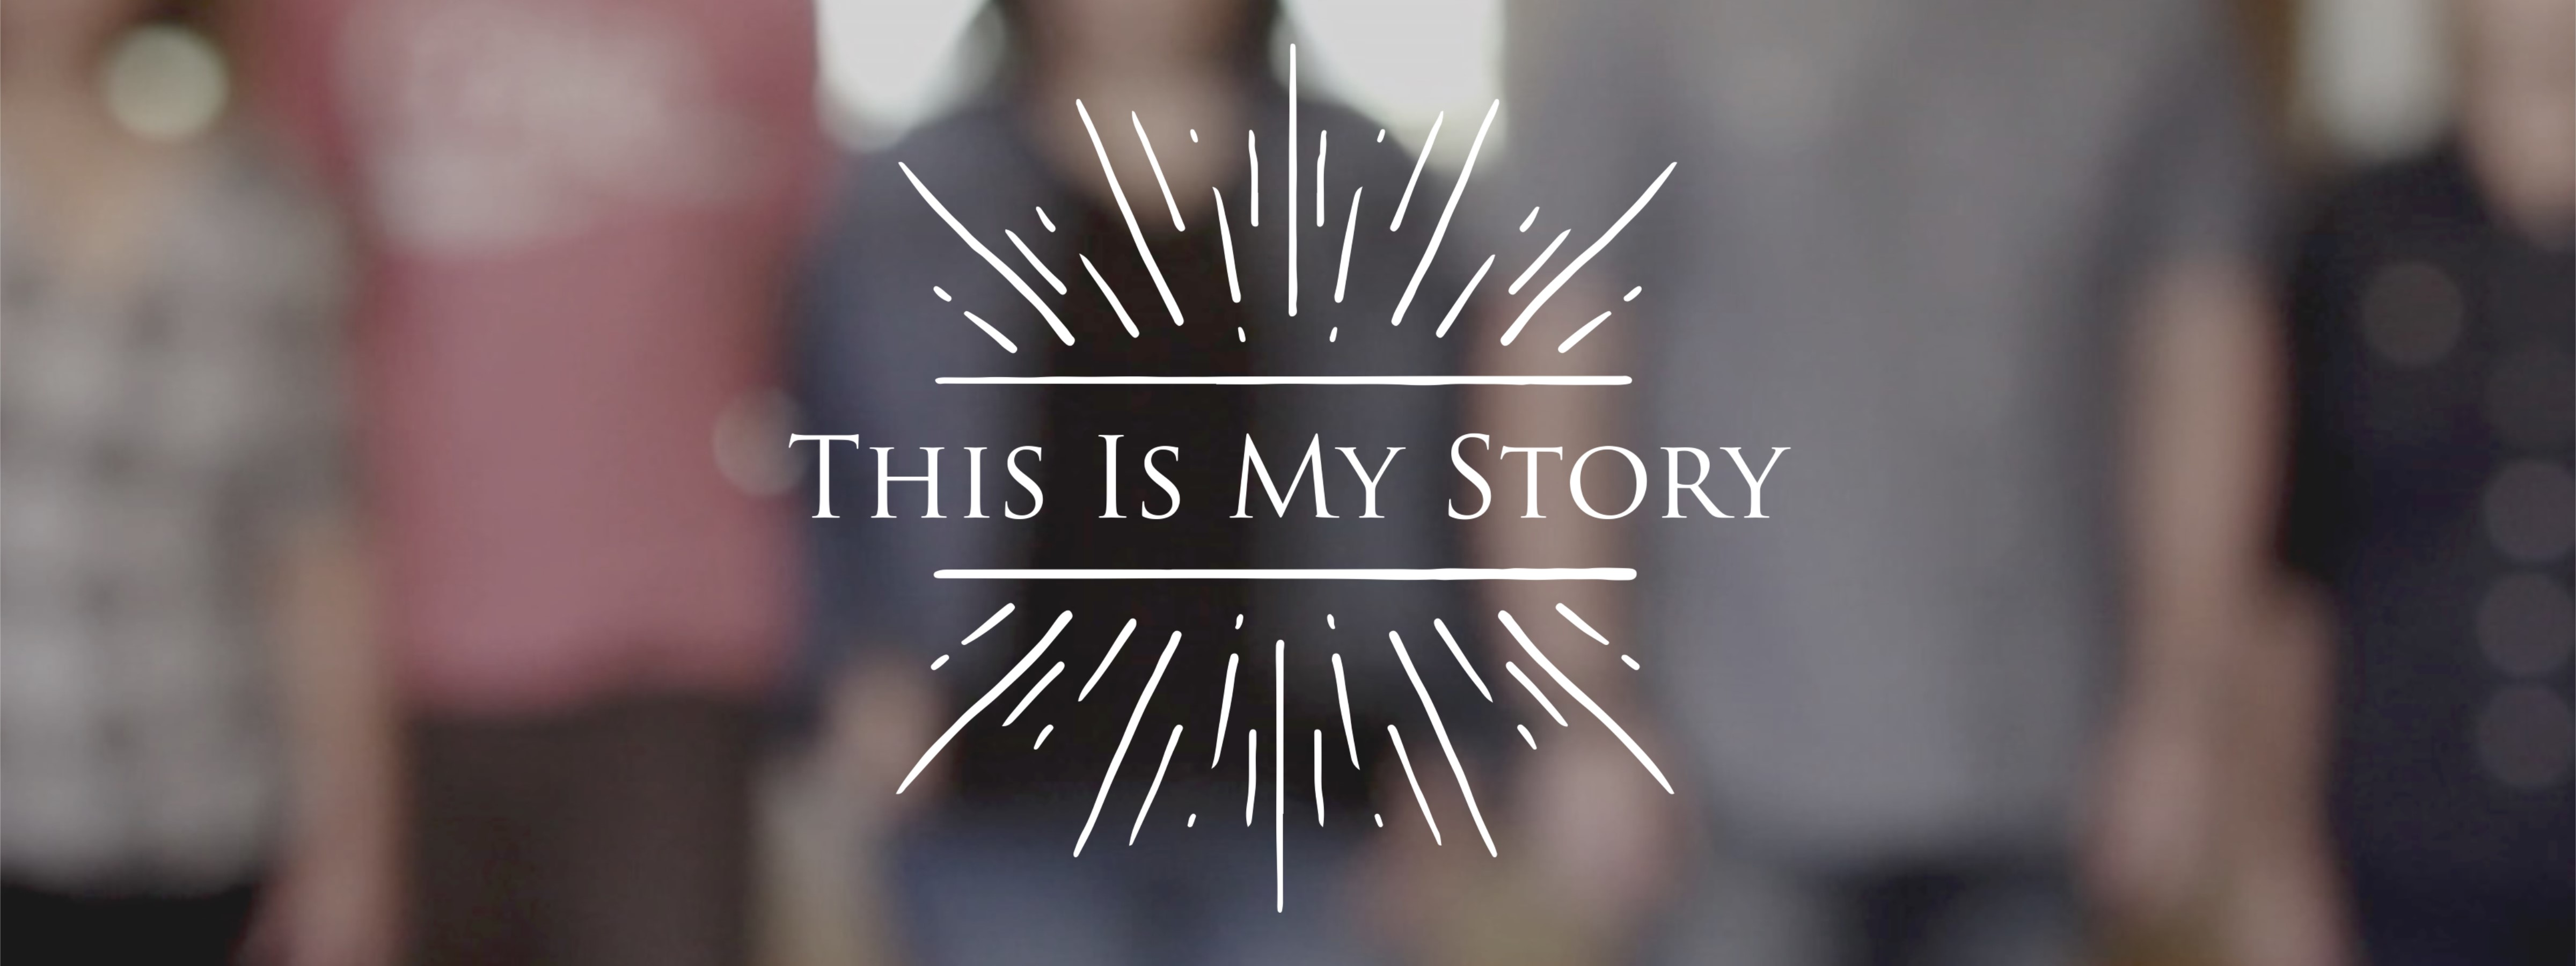 This-Is-My-Story_WB